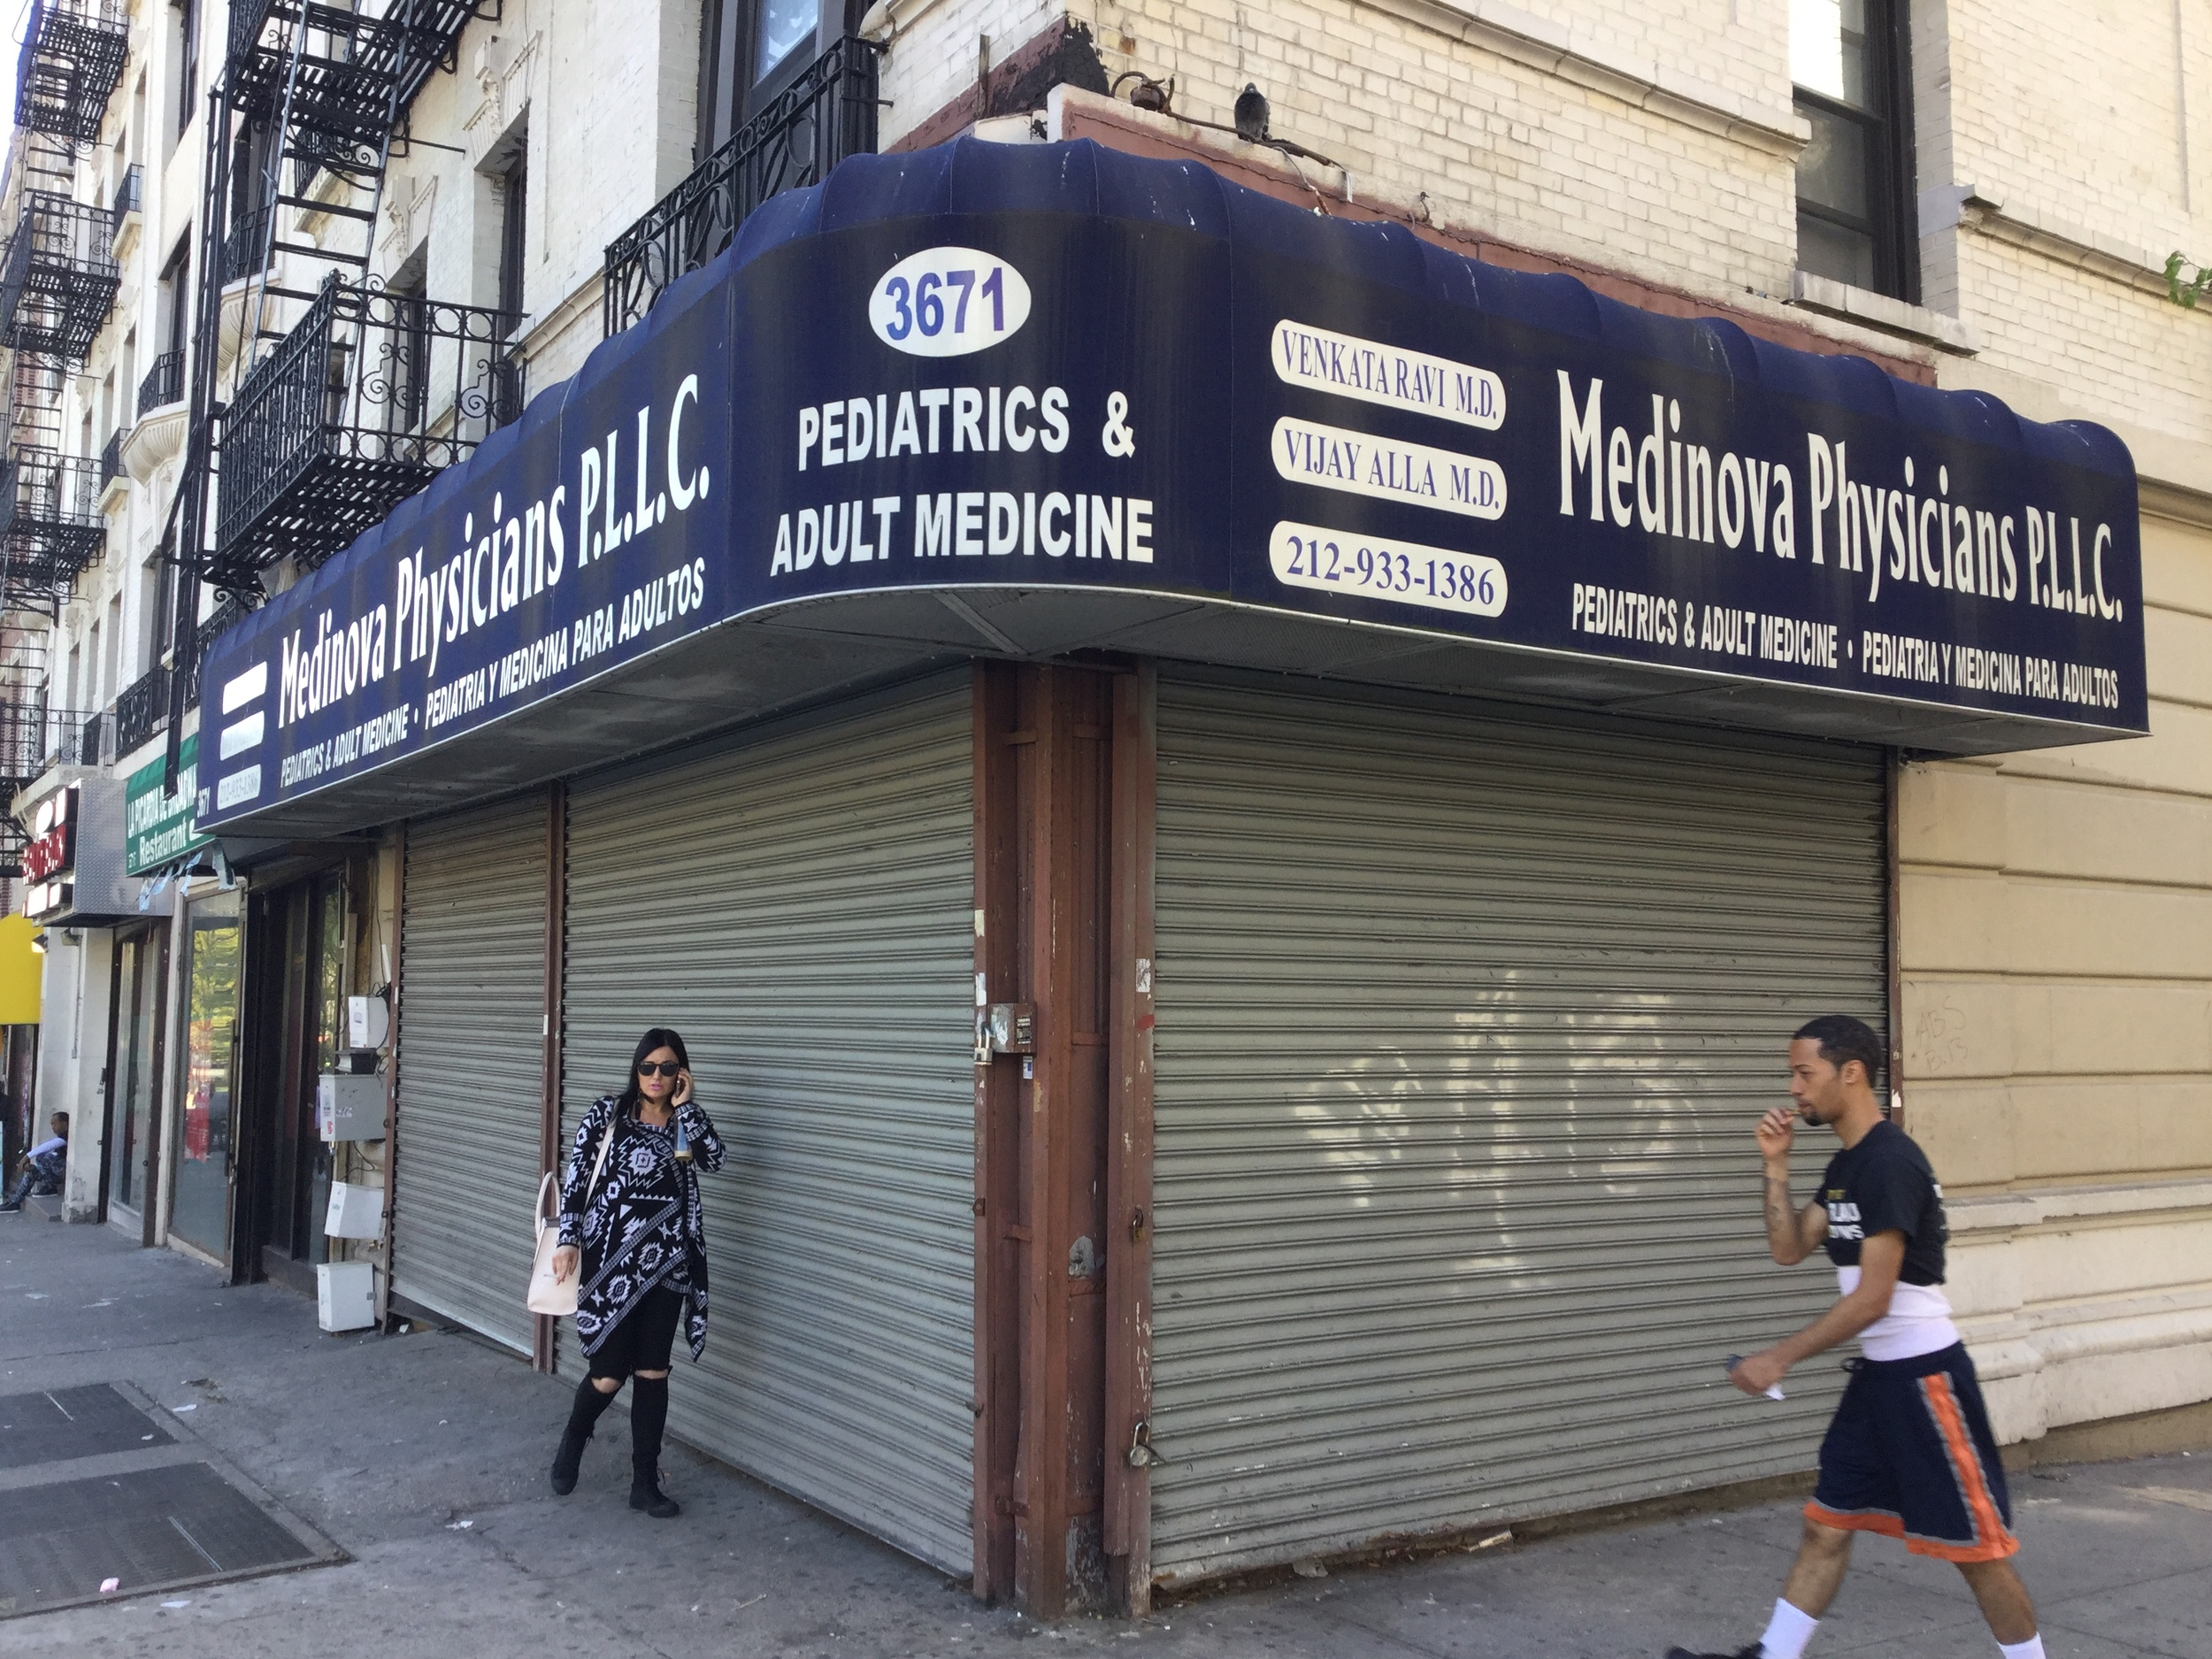 broadway and 152nd (SW) 2/2